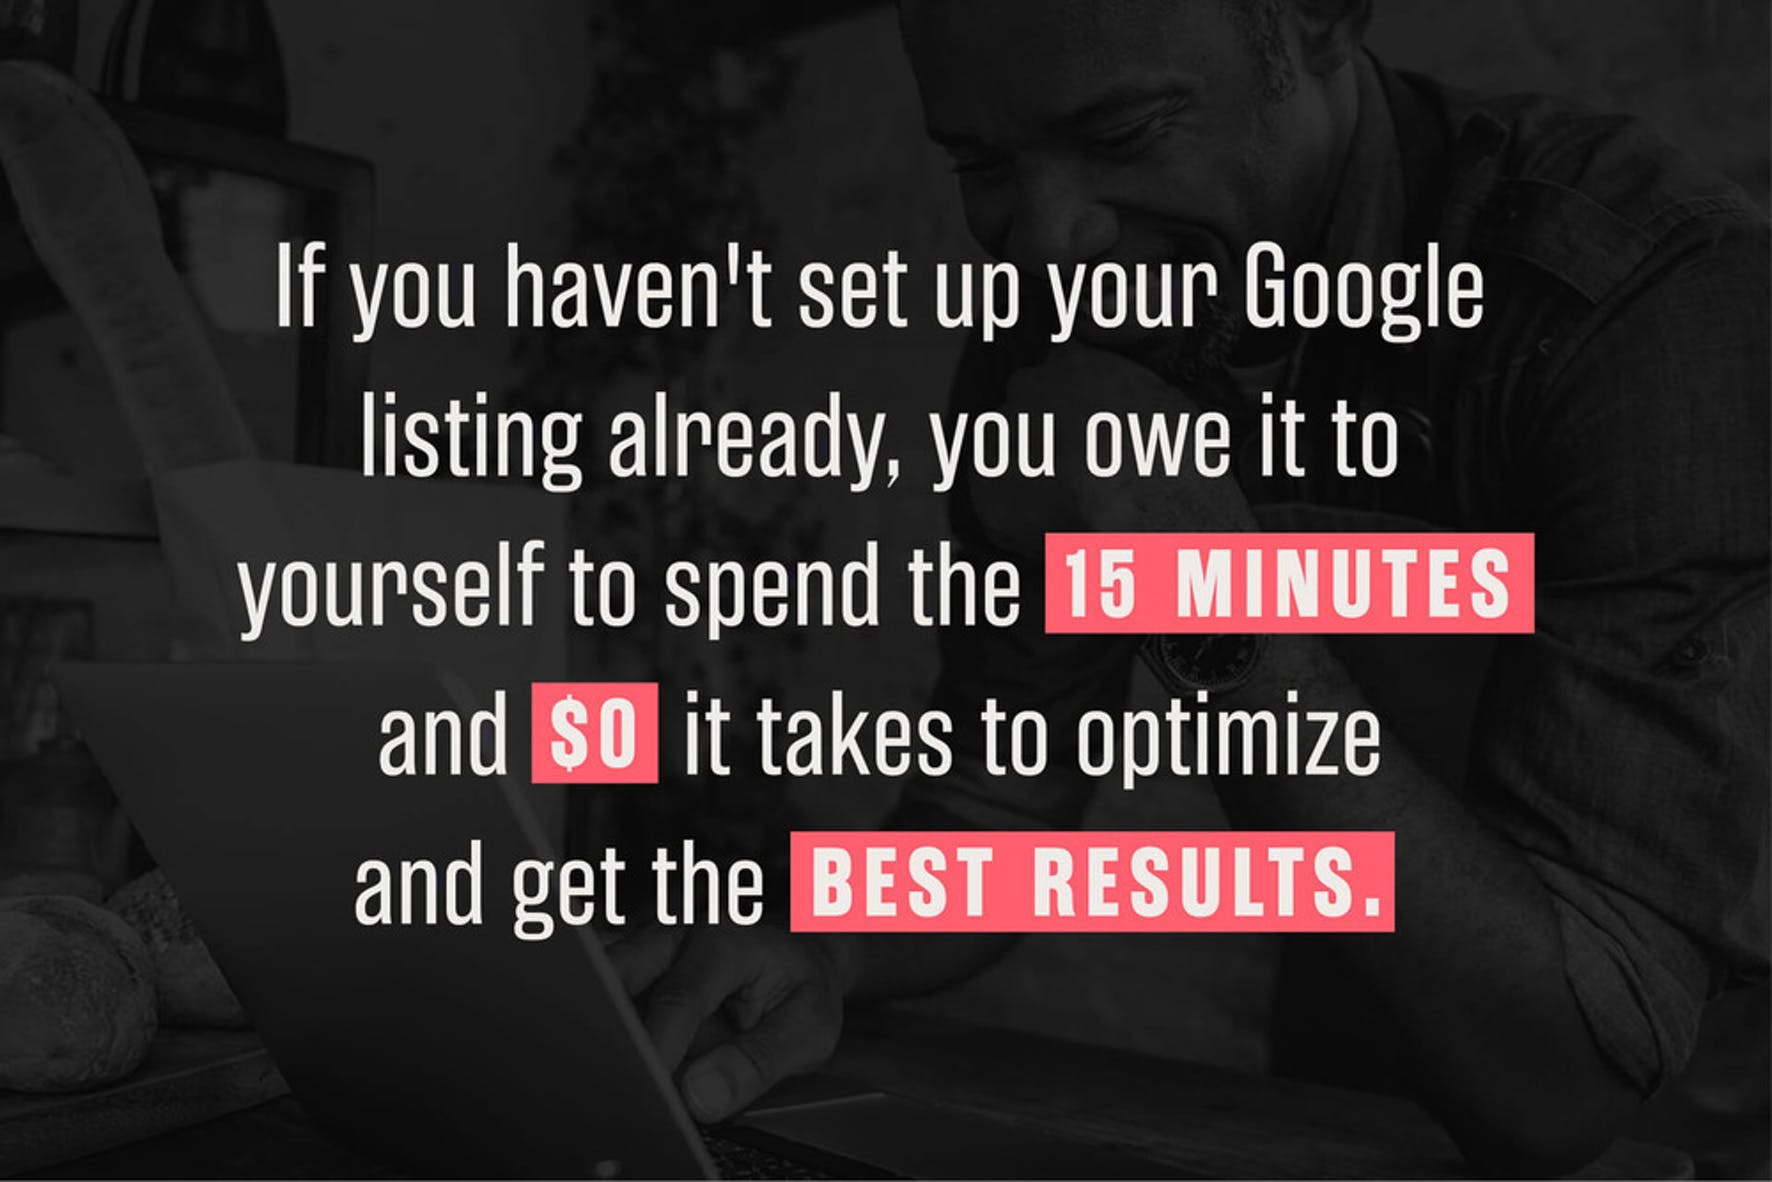 small business needs to optimize their Google my business listing for best results